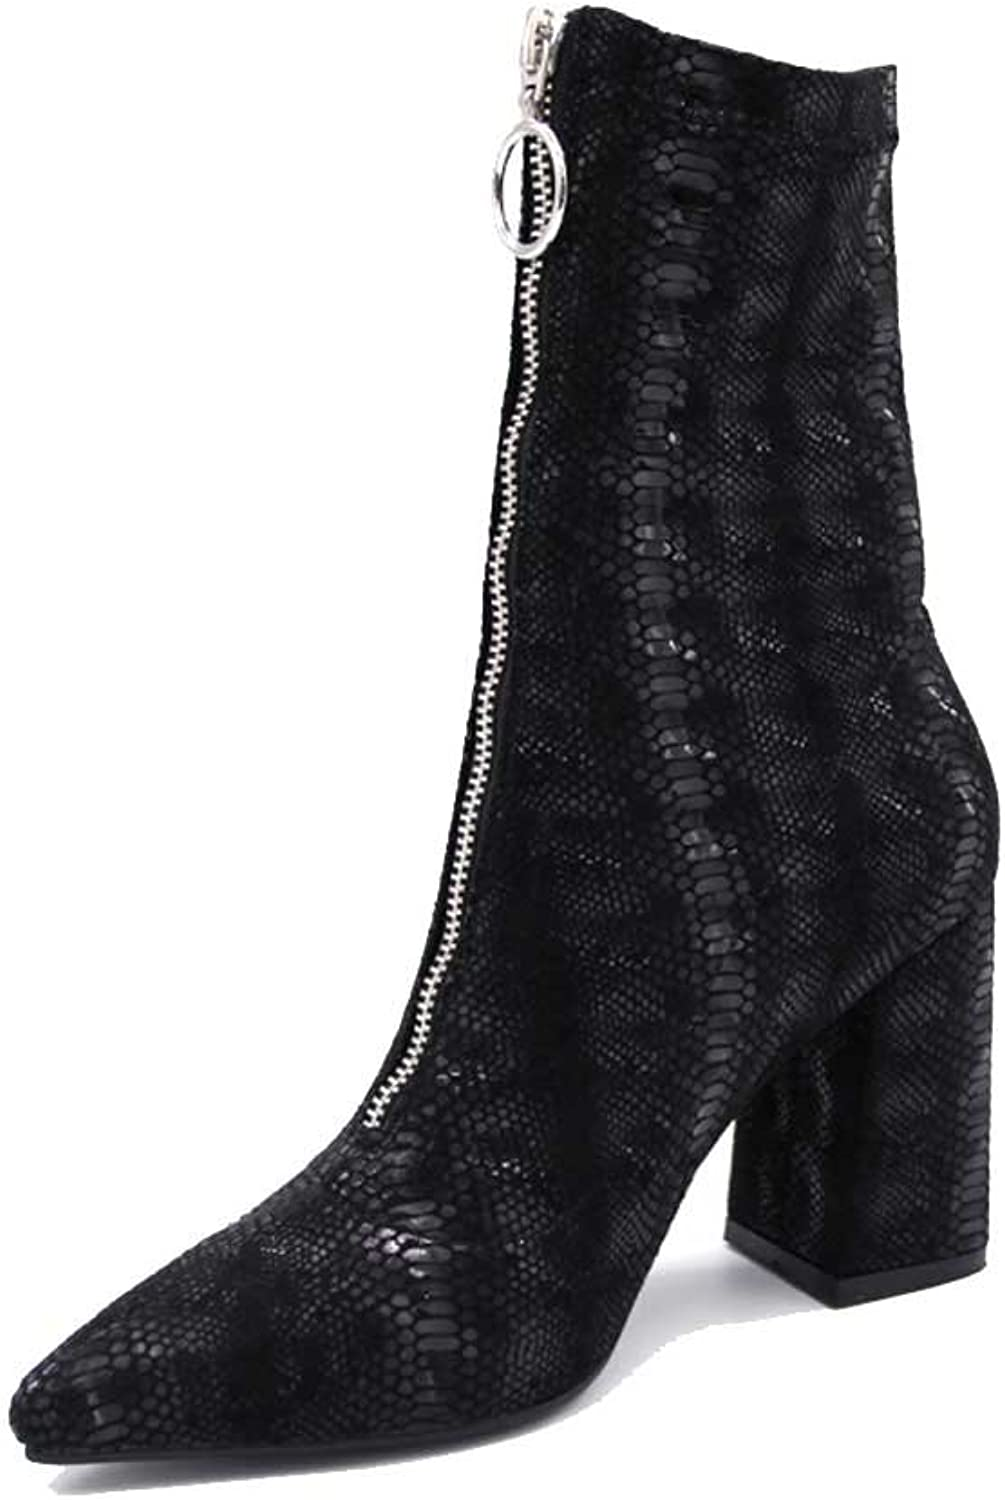 A-BUYBEA Women's Casual Pointed Toe 3.54  Chunky High Heel Croc-Embossed Front Zipper Boots shoes 4.5-10.5